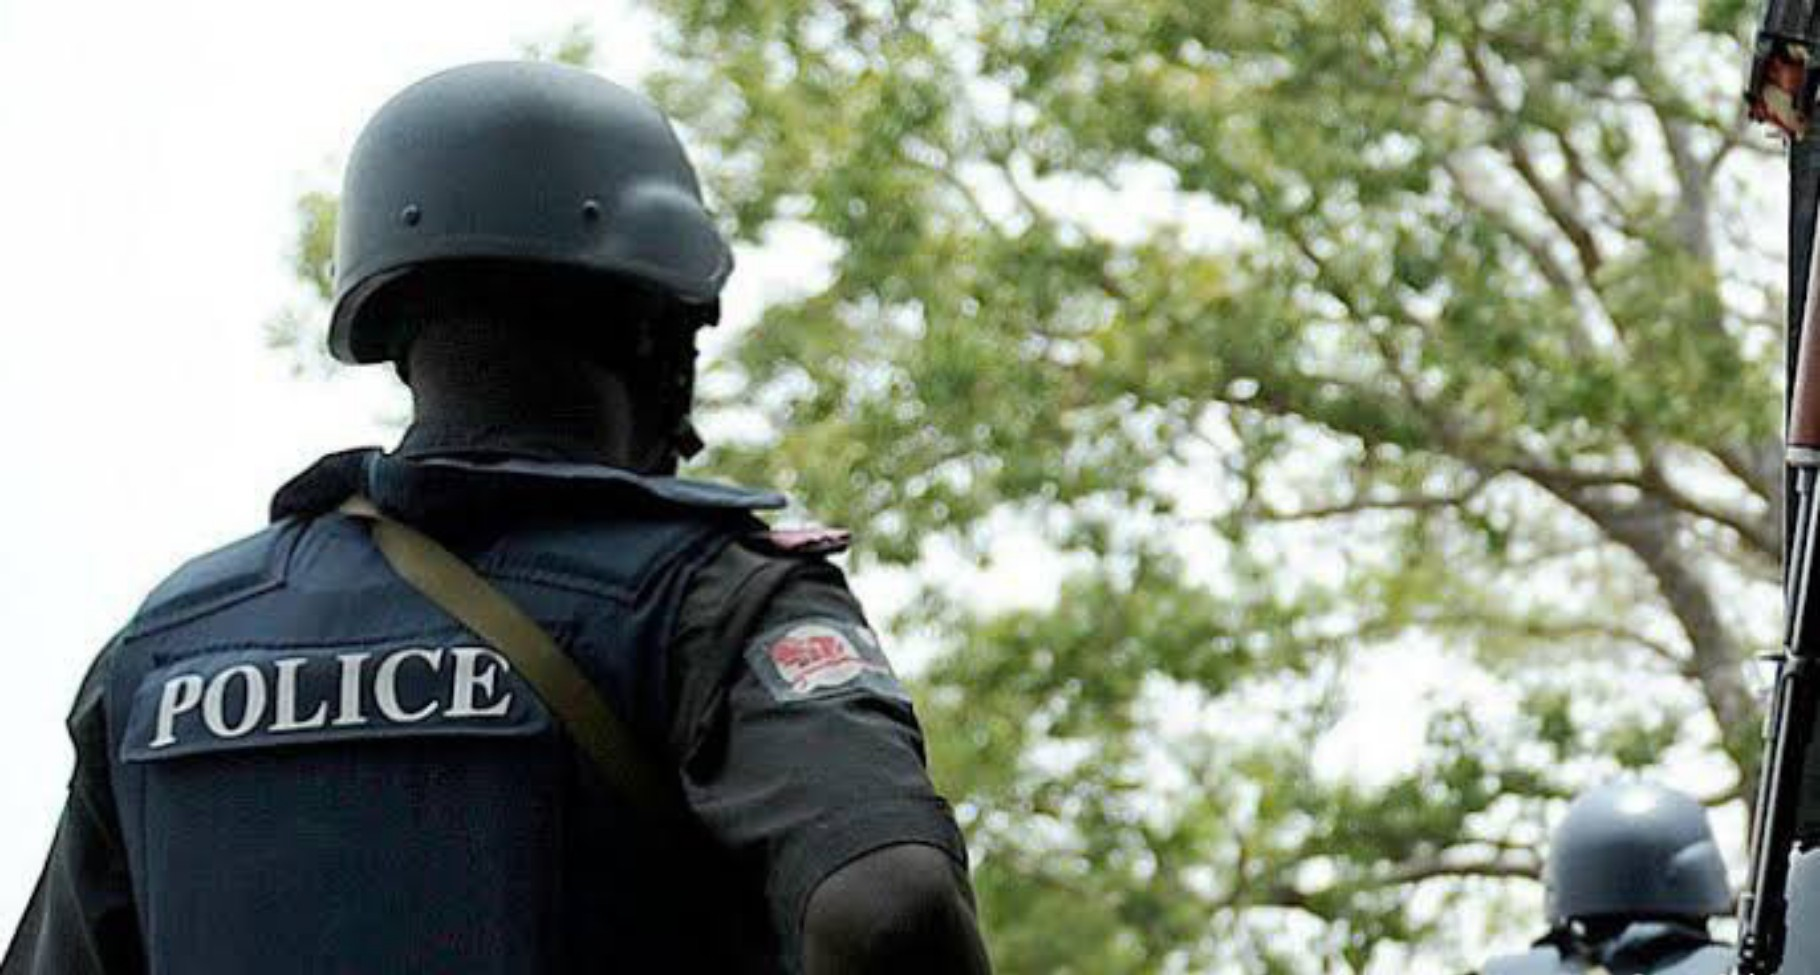 Lockdown: Kwara Police prohibit walking on street